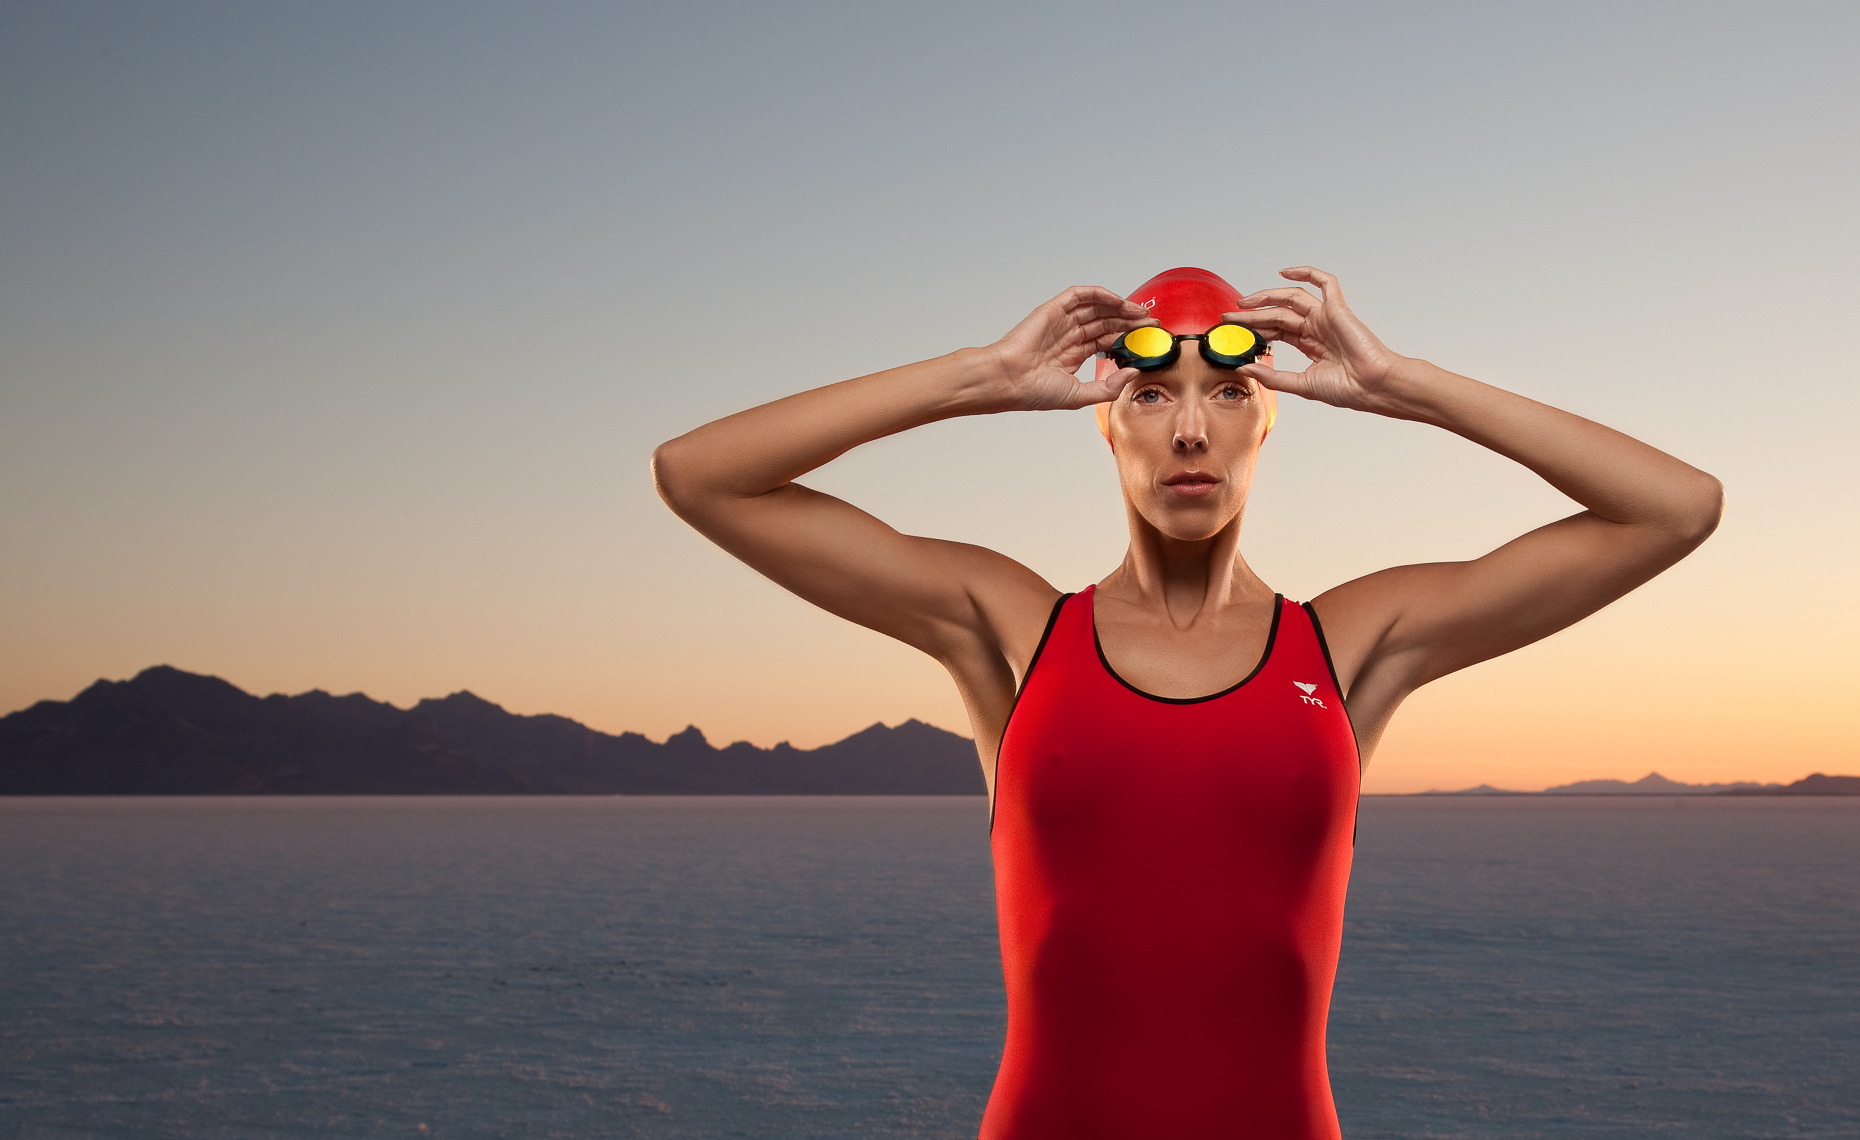 SWIMMER SALT FLATS SPEEDOSEALE_SPORTS_PORTRAIT